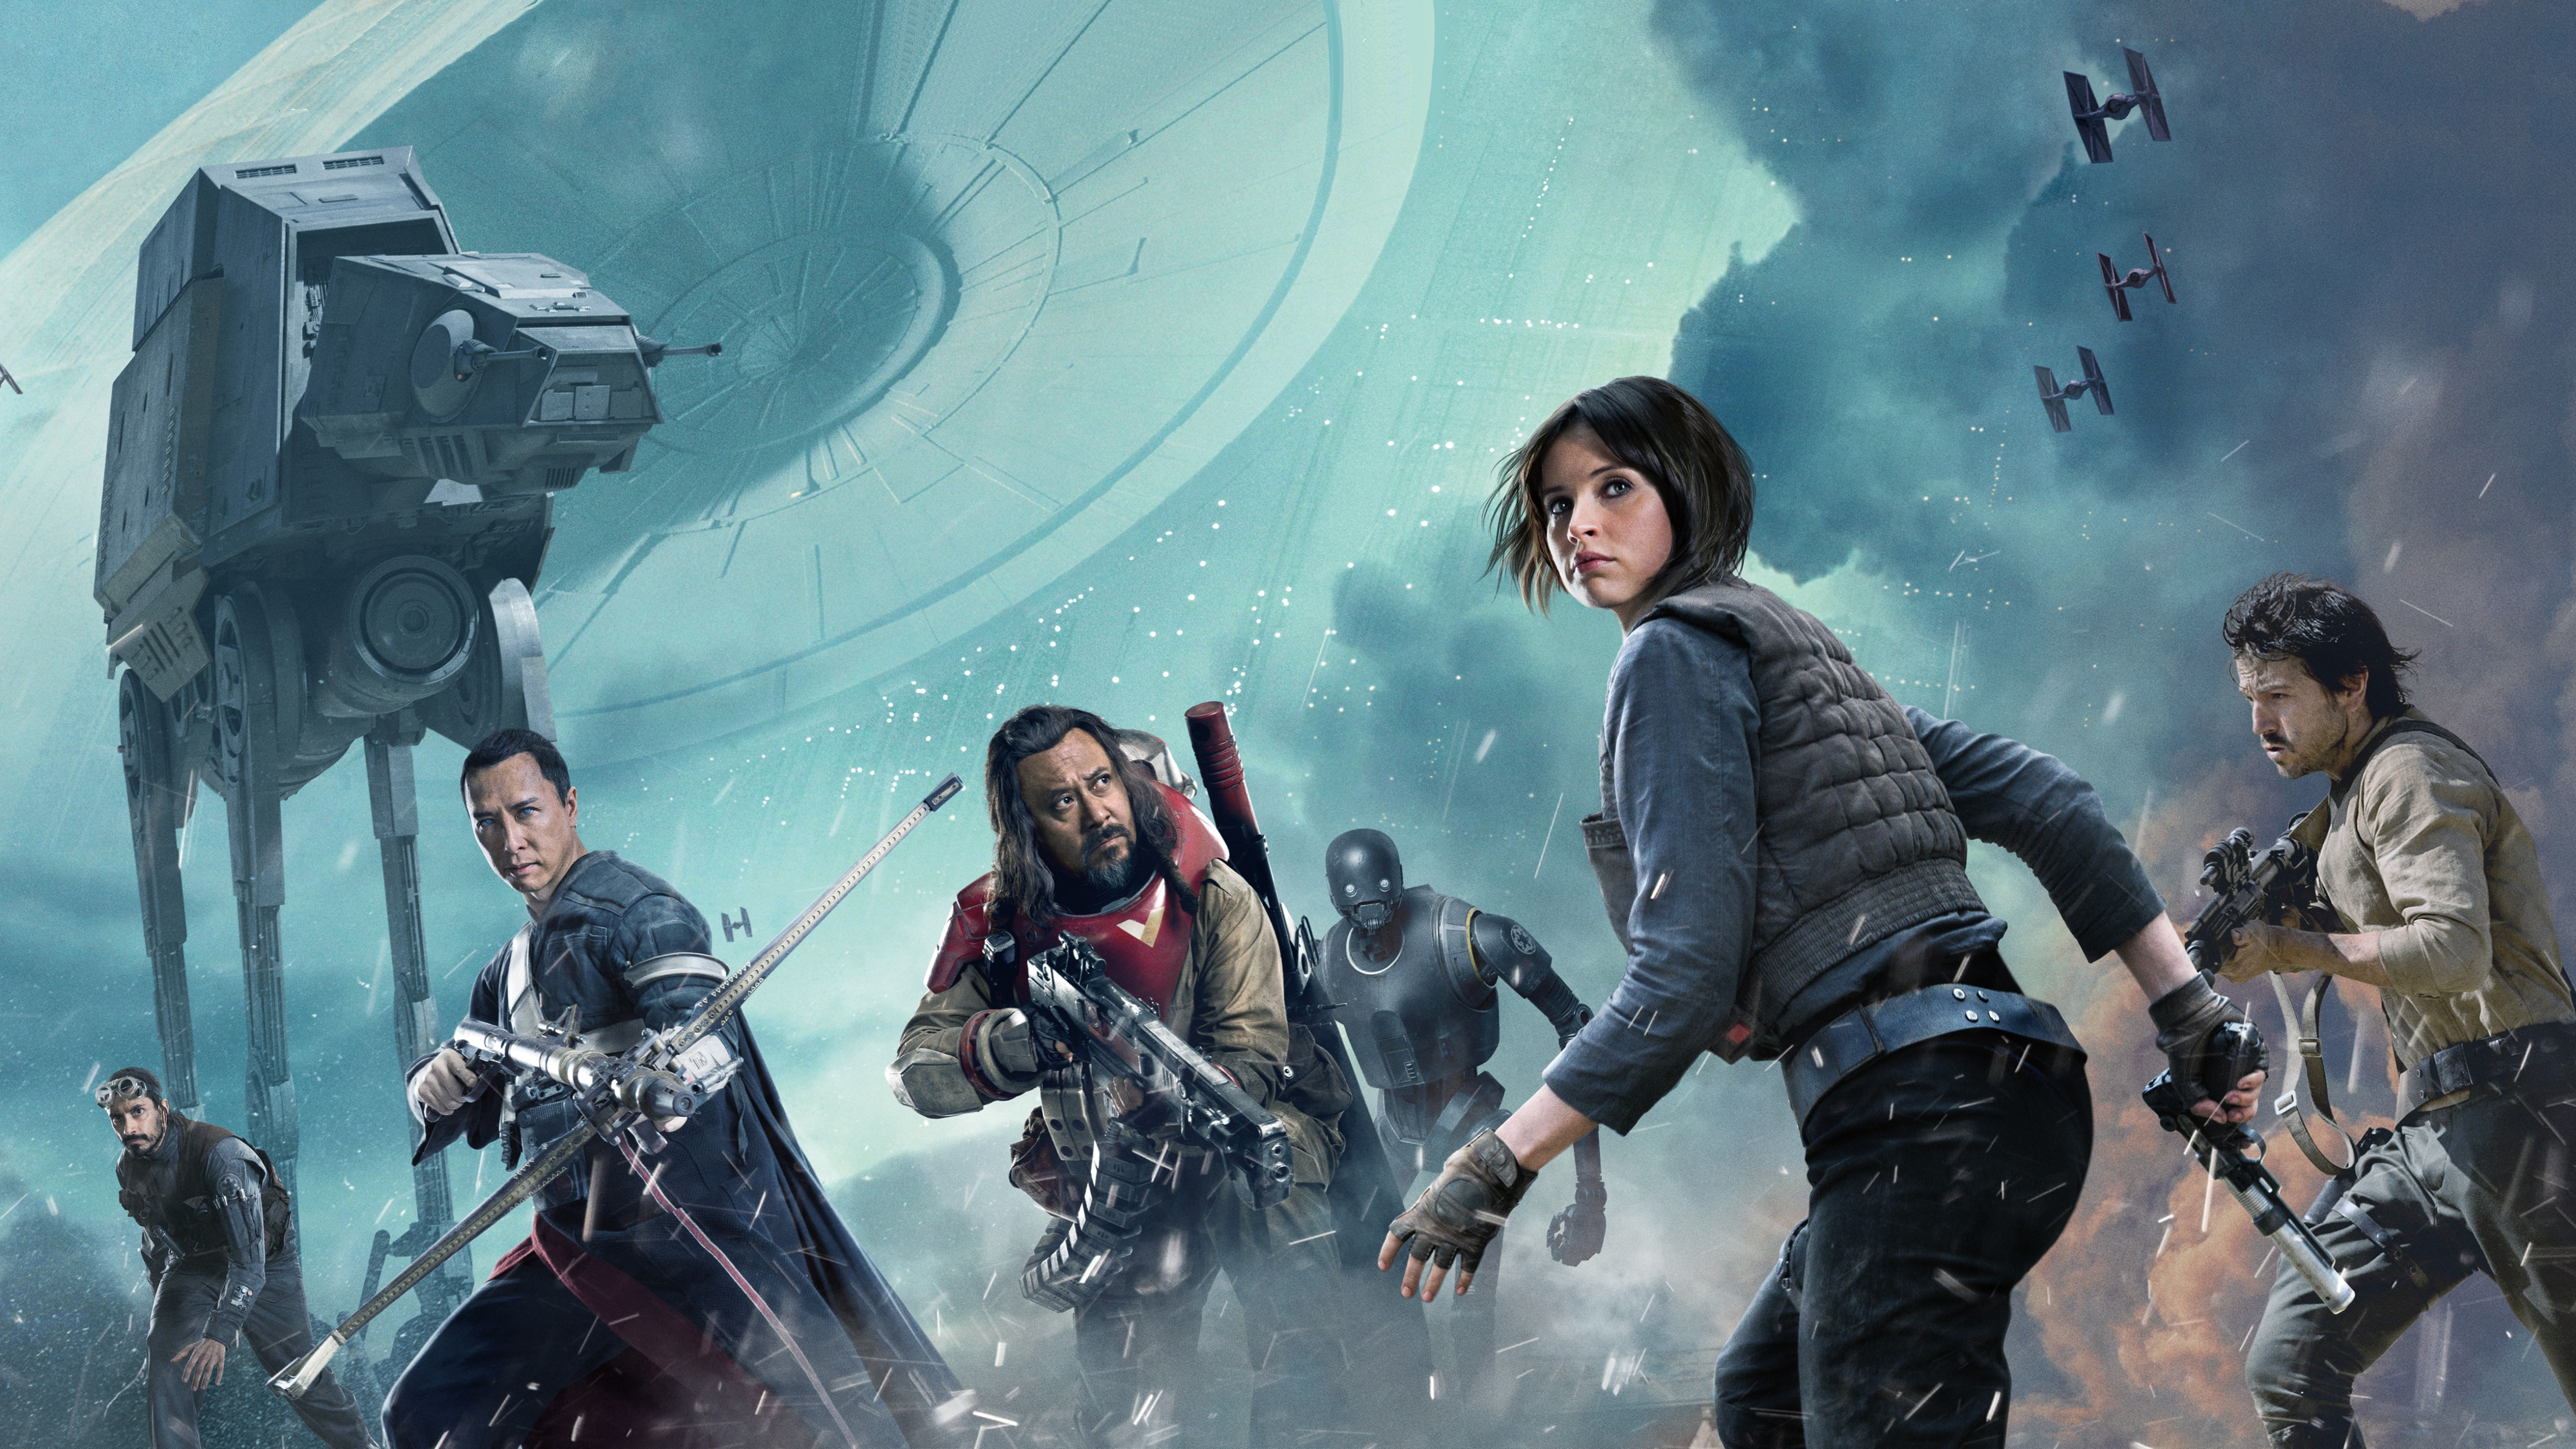 1280x1024 Rogue One A Star Wars Story 5k 1280x1024 Resolution Hd 4k Wallpapers Images Backgrounds Photos And Pictures